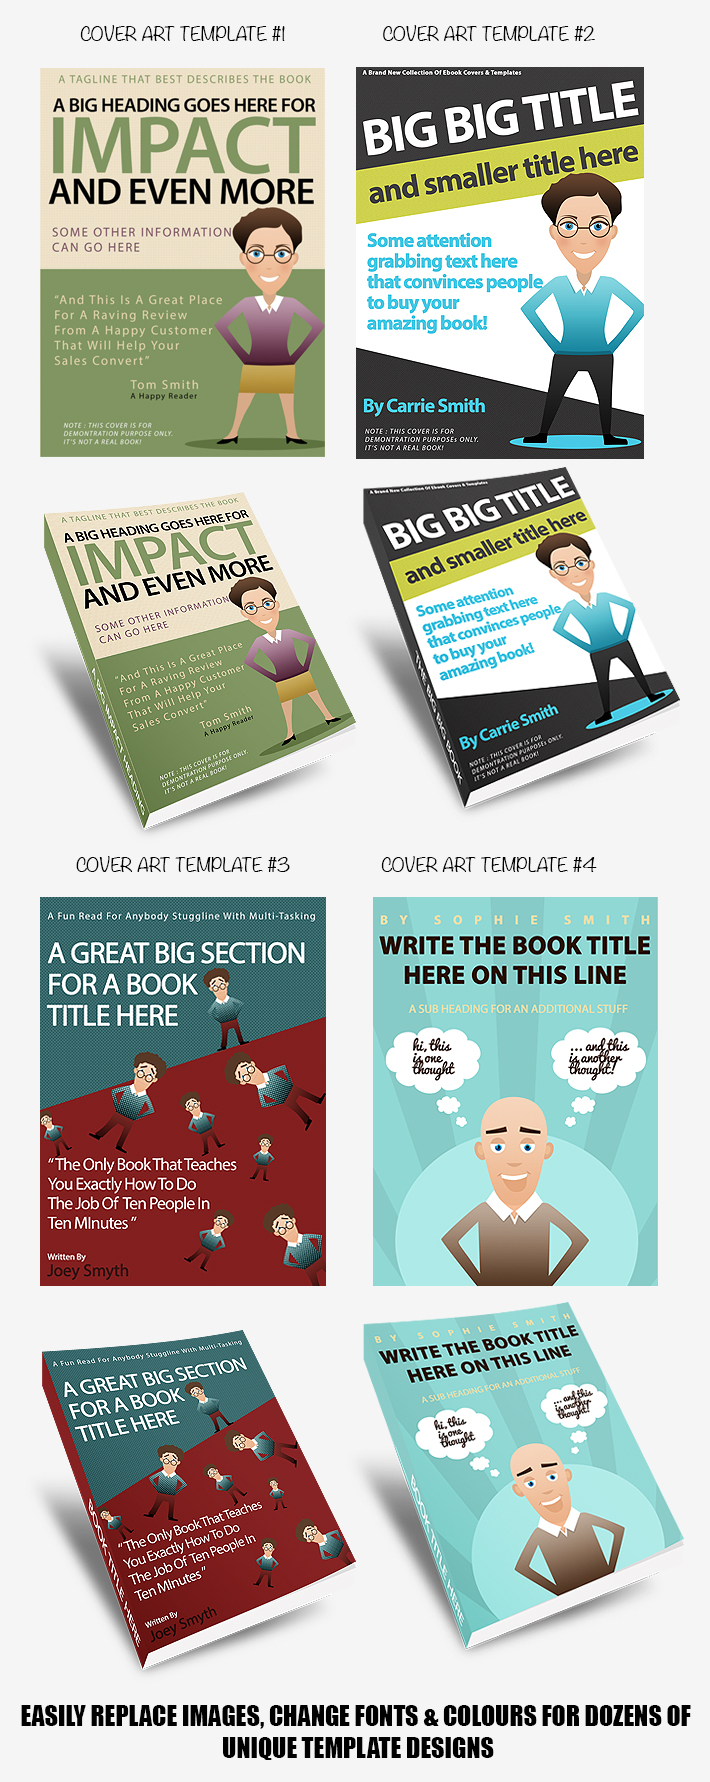 How To Make A Book Cover Using Pixlr : Get instant cash product stunning package hurry